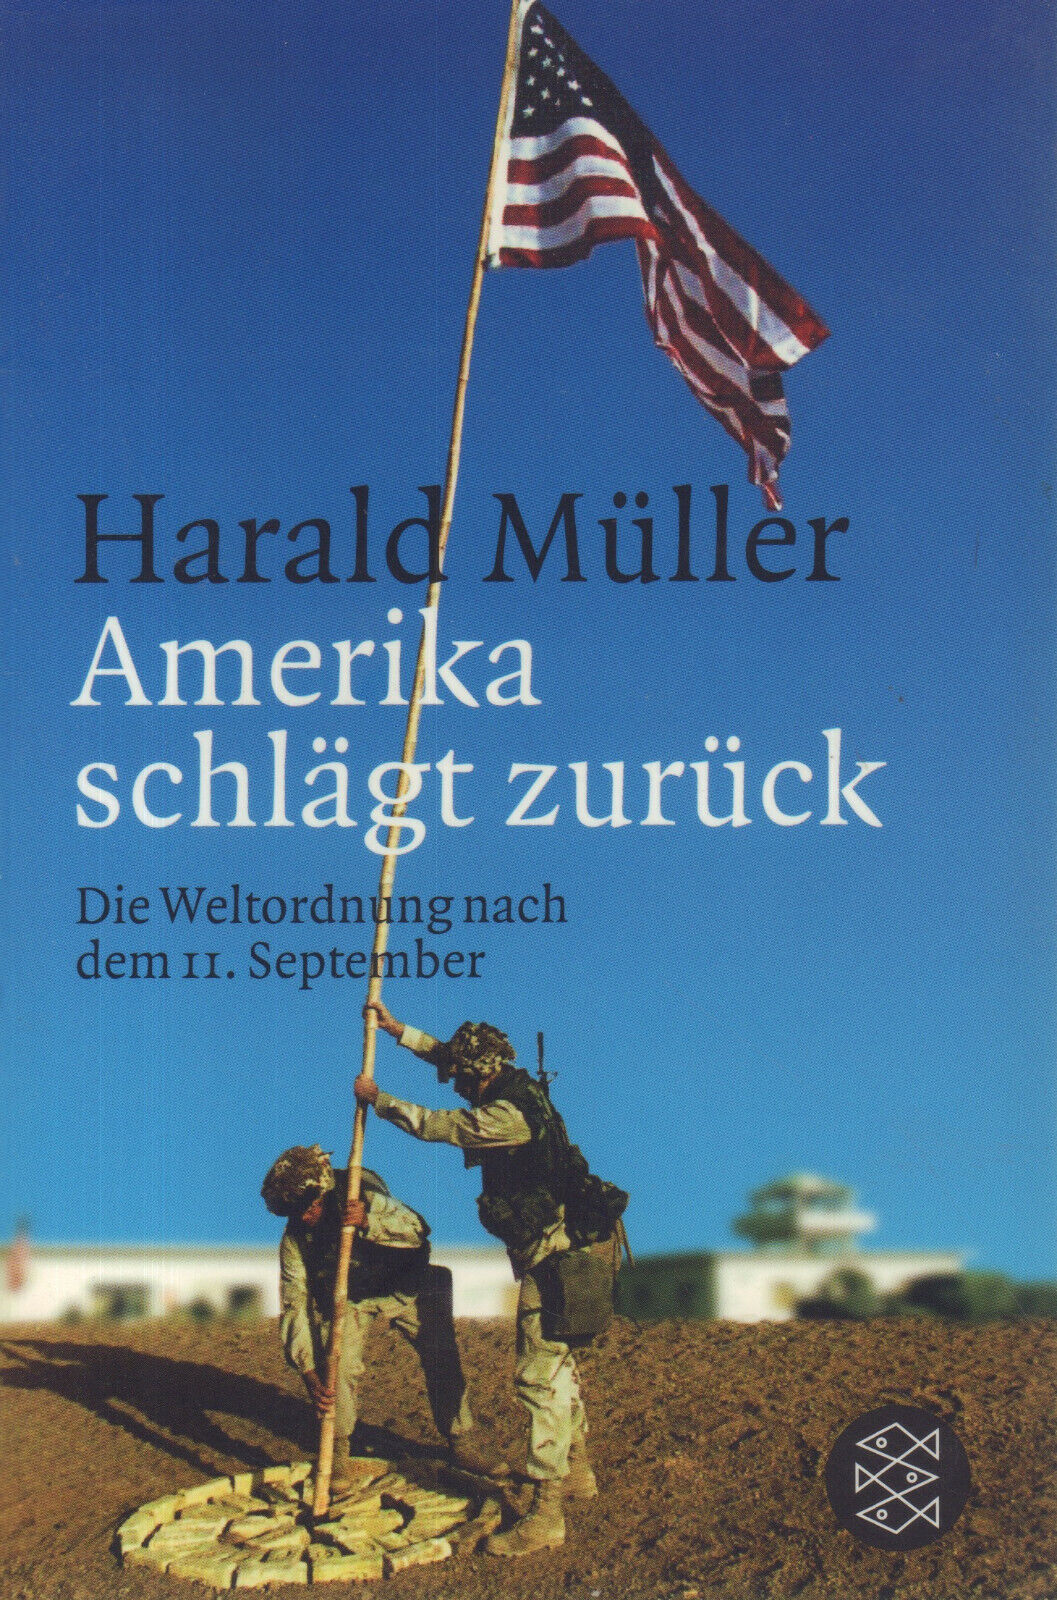 Harald Mueller im radio-today - Shop